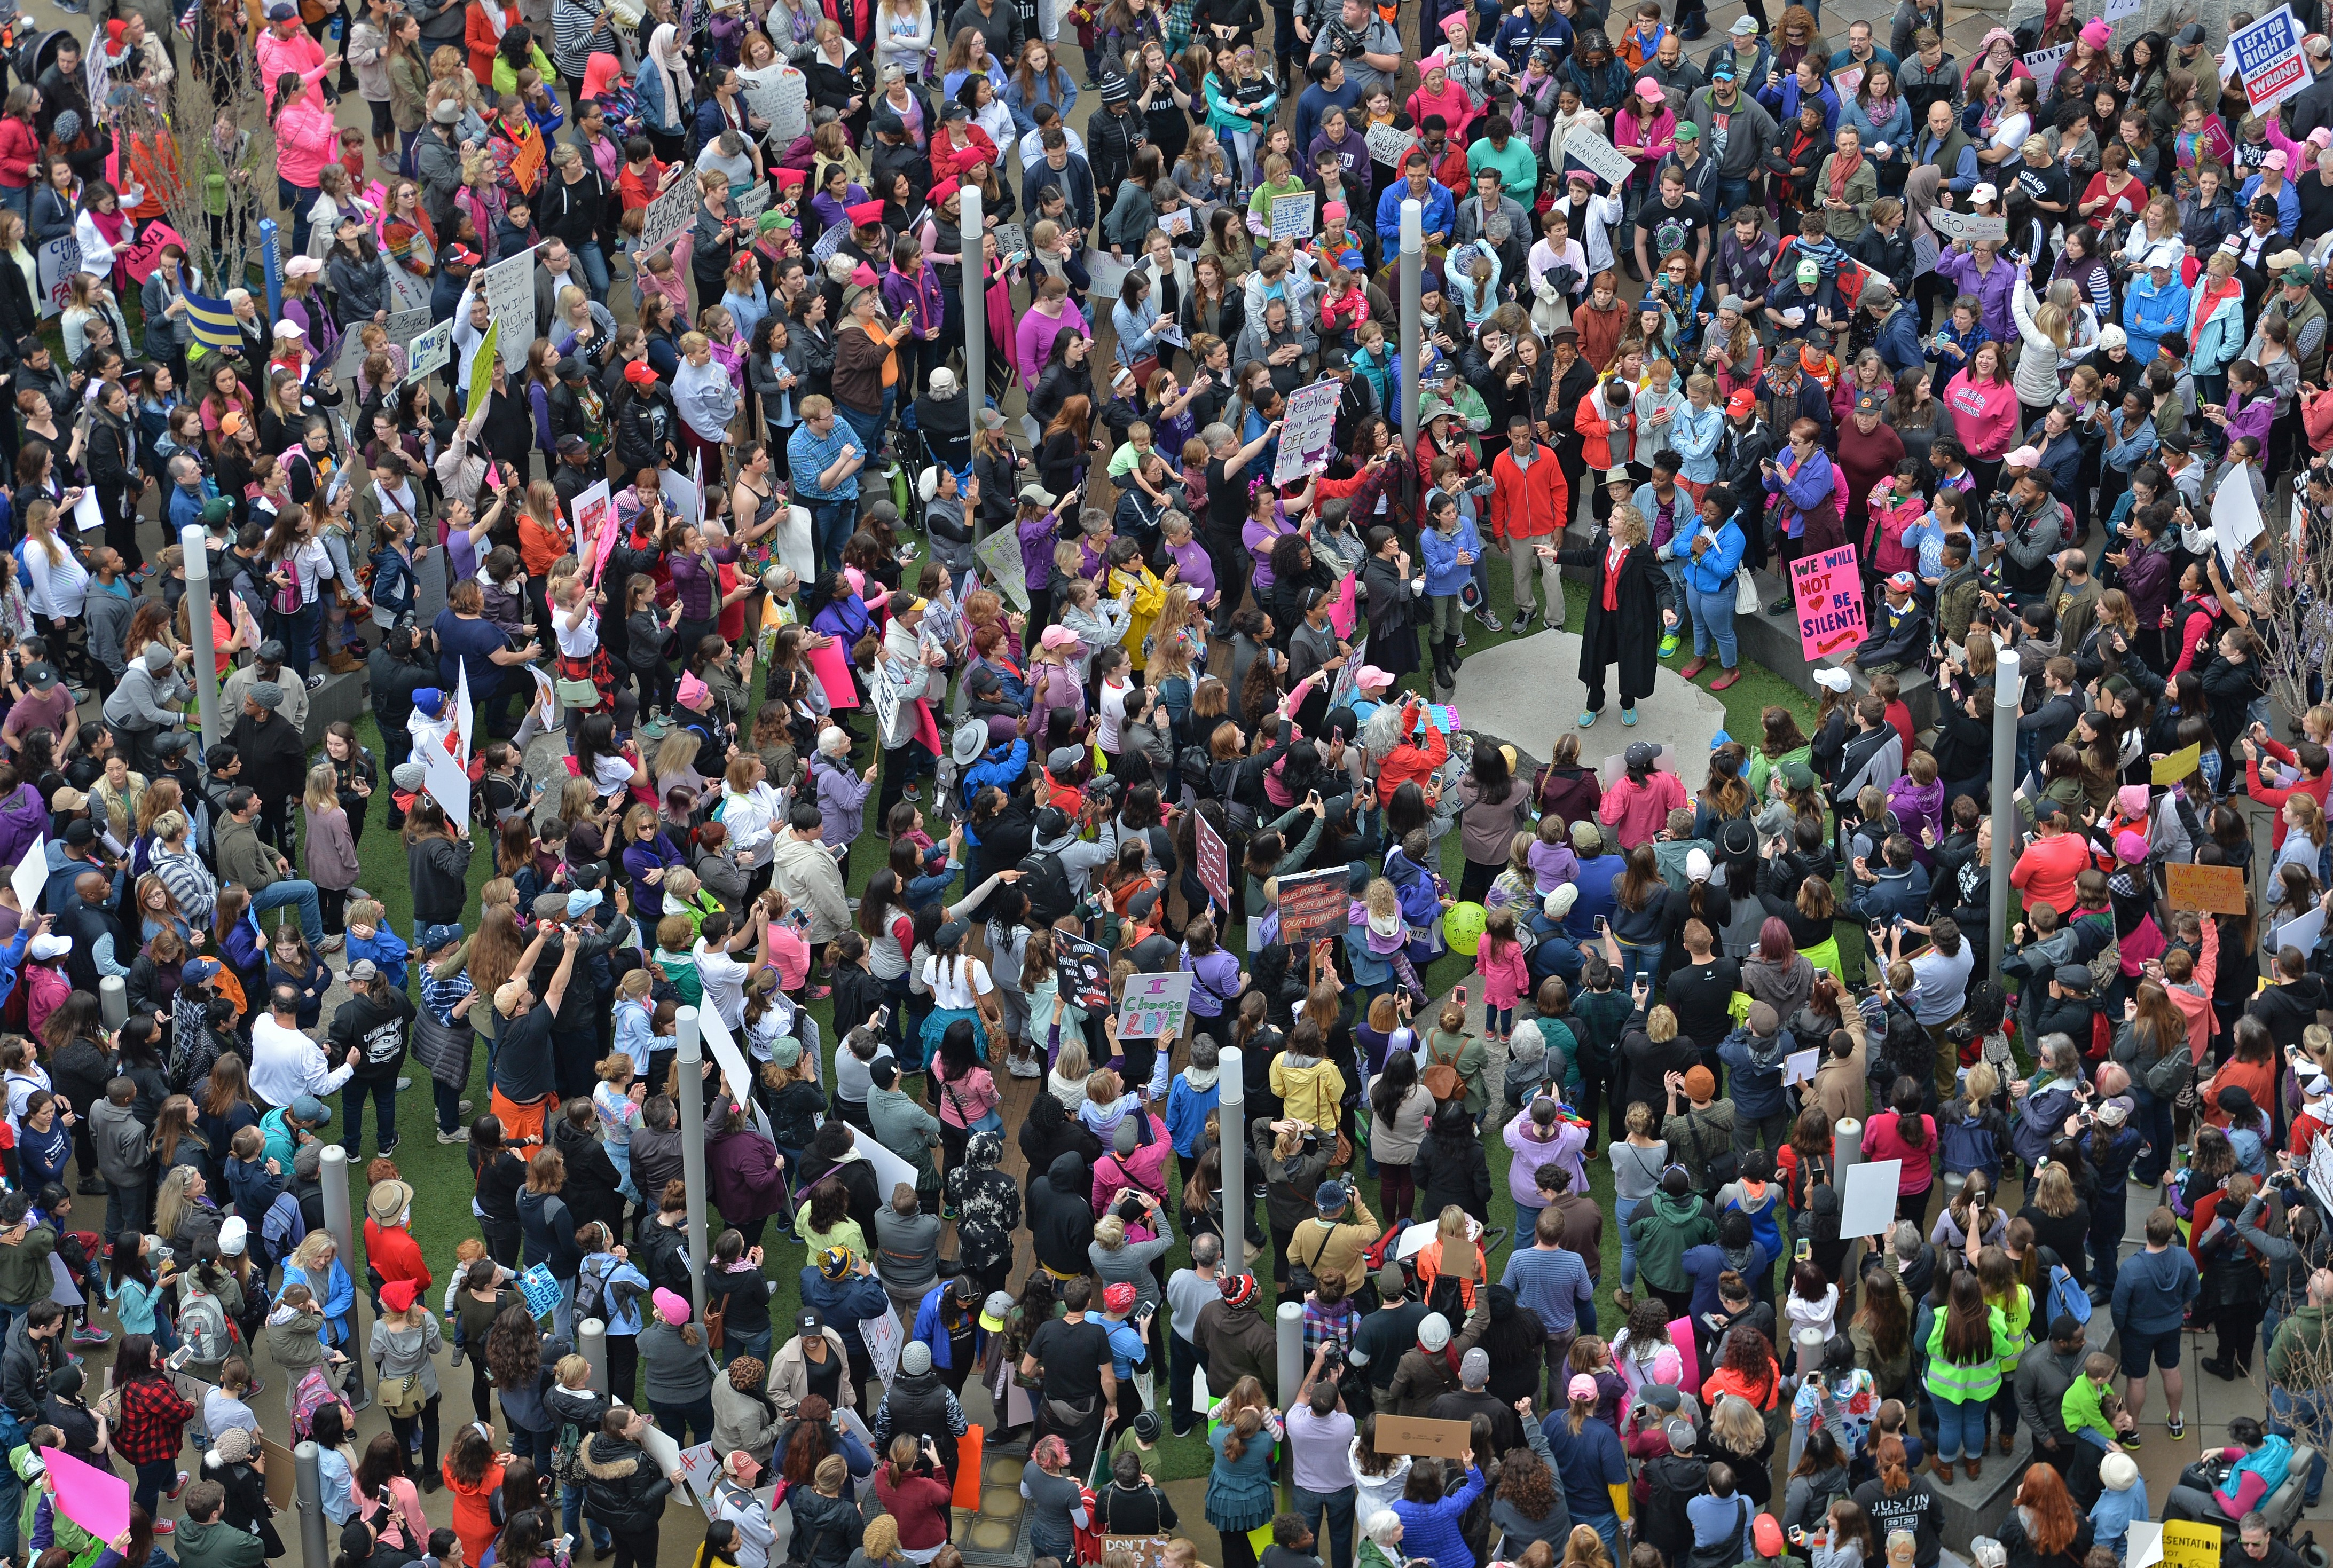 Women's march in Charlotte attended by an estimated 10,000 demonstrators as a sister march to the one in Washington DC while Charlotte mayor Jennifer Roberts speaks, in USA on January 21, 2017. (Peter Zay--Anadolu Agency/Getty Images)